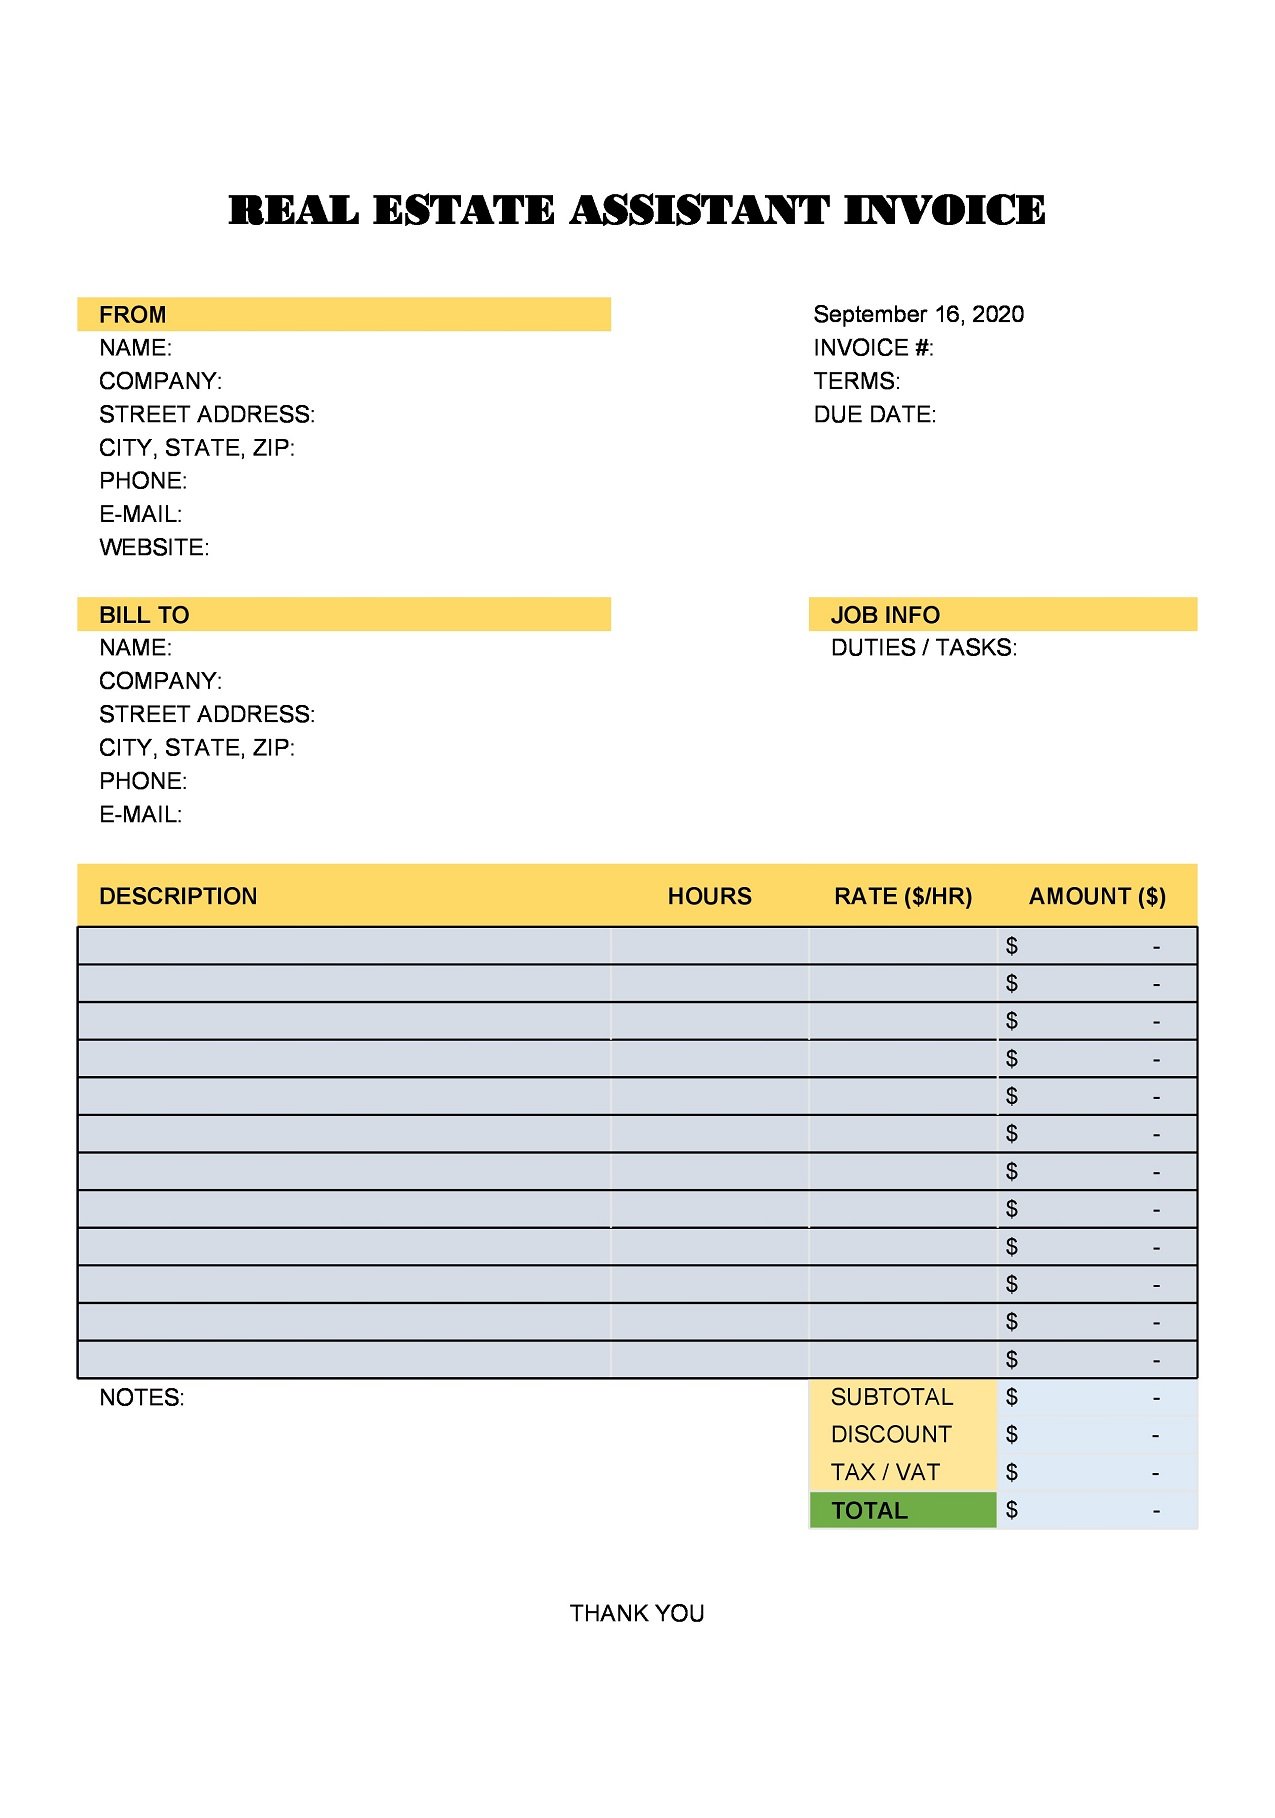 Real Estate Assistant Invoice Excel Template